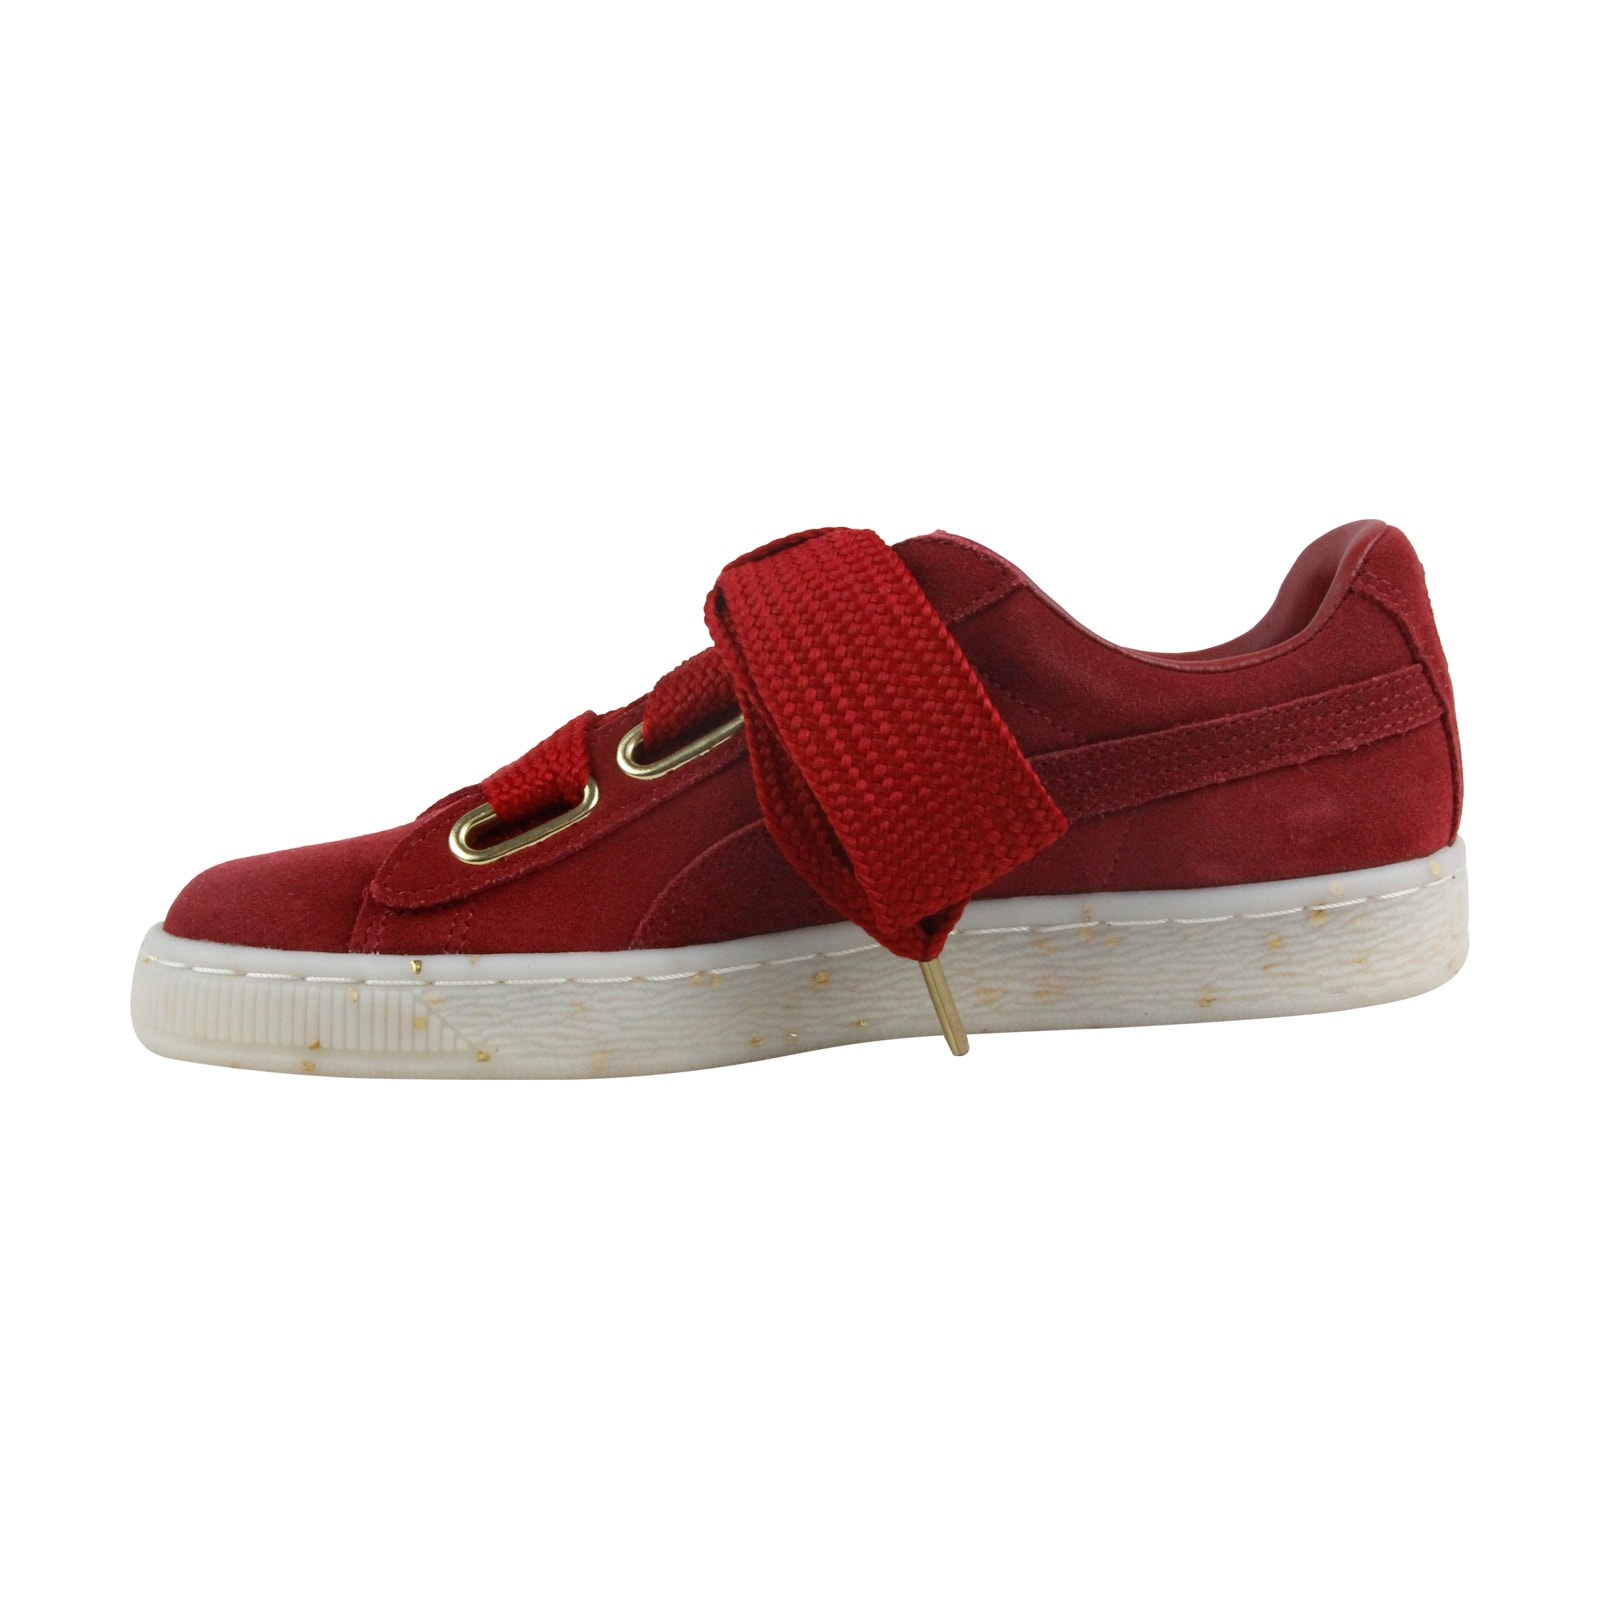 5dd3848d5d8 Shop Puma Heart Fab Womens Red Suede Lace up Sneakers Shoes - Free Shipping  Today - Overstock - 21730793